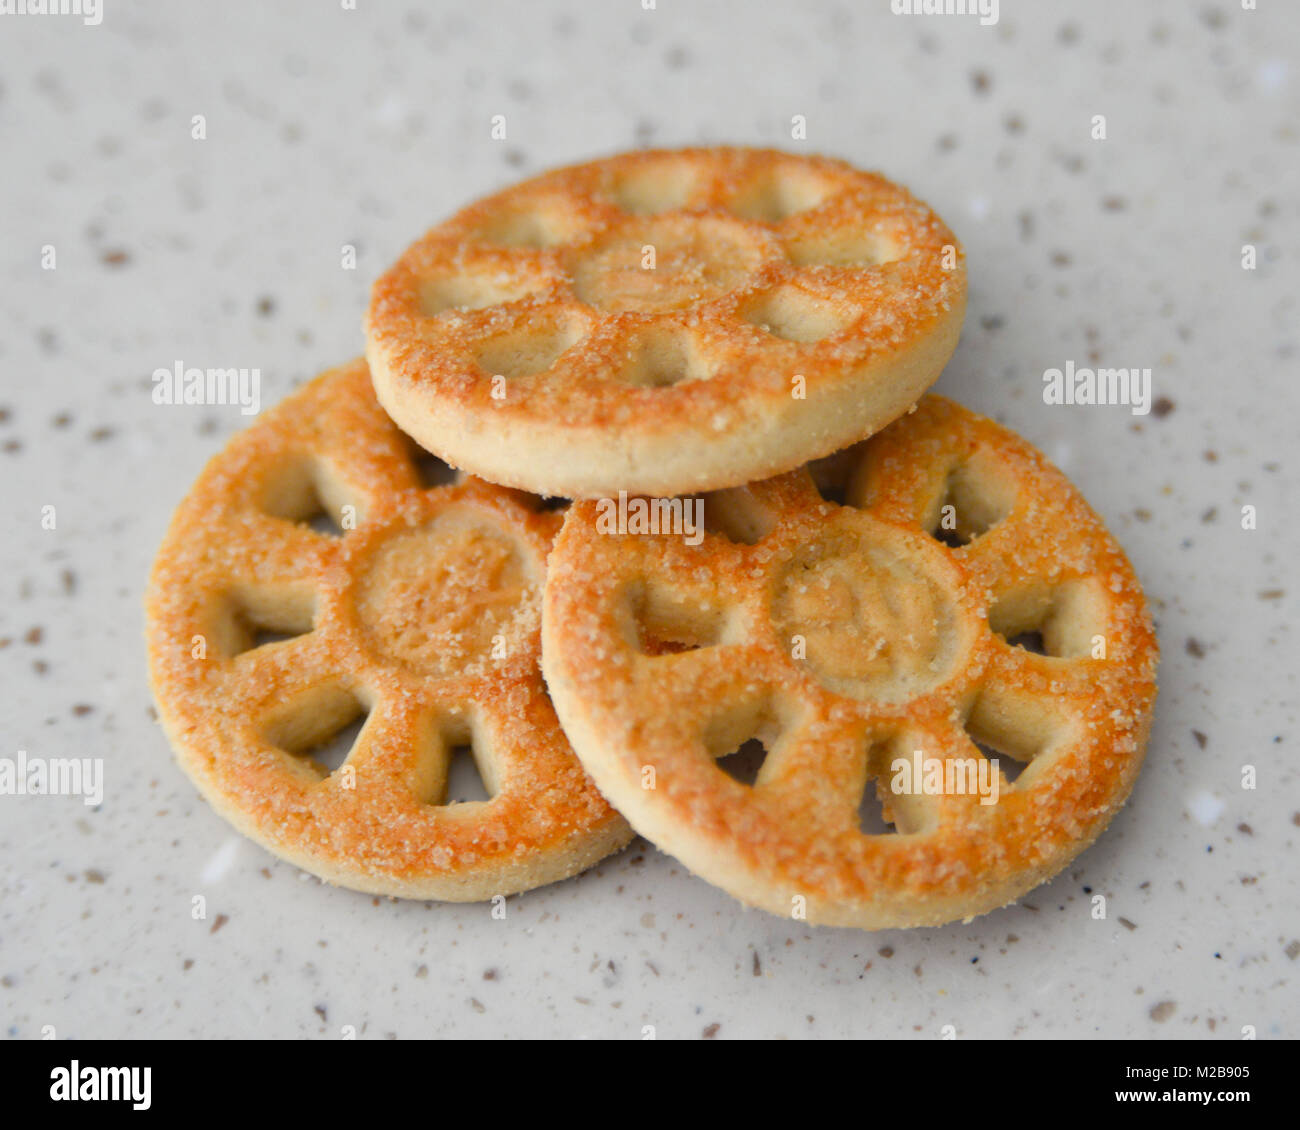 Close up of three round biscuits on a beige surface - Stock Image